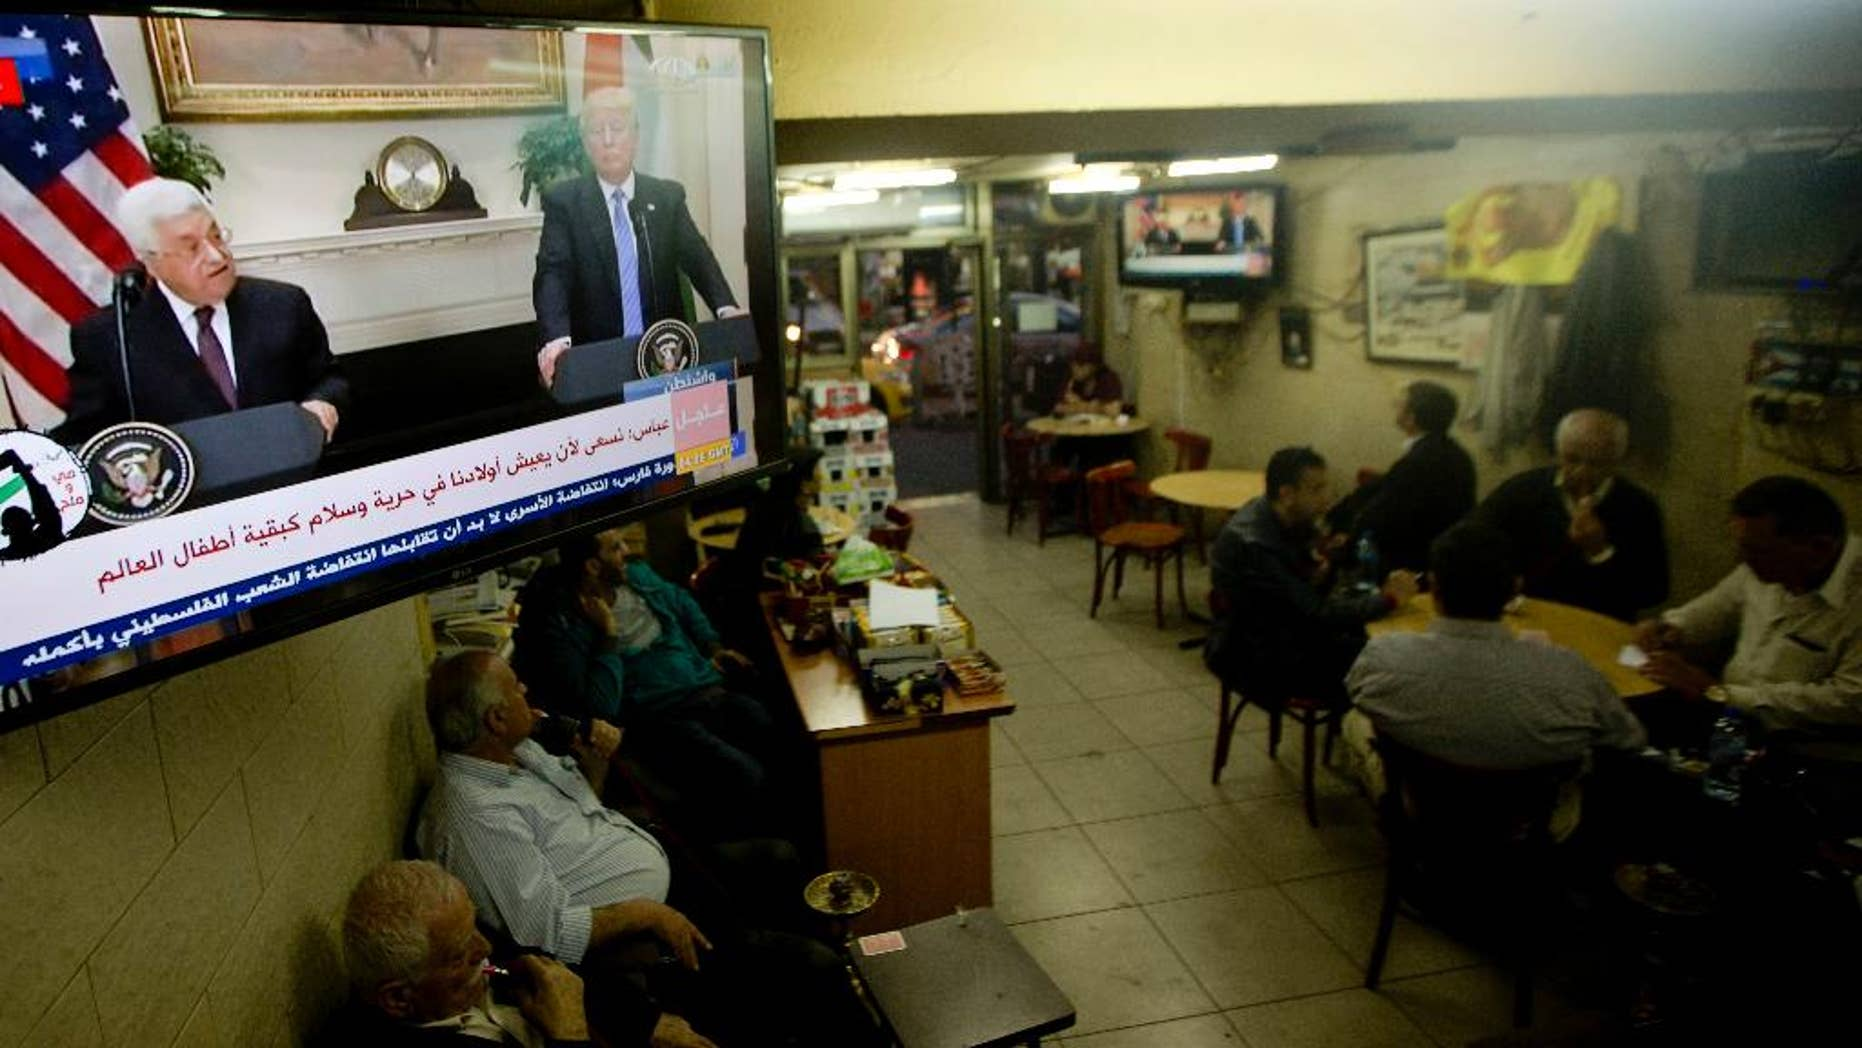 "Palestinians play cards at a coffee shop as a television broadcasts a statement in Washington between  President Donald Trump with Palestinian President Mahmoud Abbas, in the West Bank city of Ramallah, Wednesday, May 3, 2017. Trump said Wednesday that the White House is starting a process between the Israelis and Palestinians that ""hopefully will lead to peace."" Abbas said that he's hopeful for bringing about peace with Israel ""based on the vision of two states,"" with the borders of 1967. Israel has rejected the 1967 lines as a possible border, saying it would impose security risks. (AP Photo/Majdi Mohammed)"